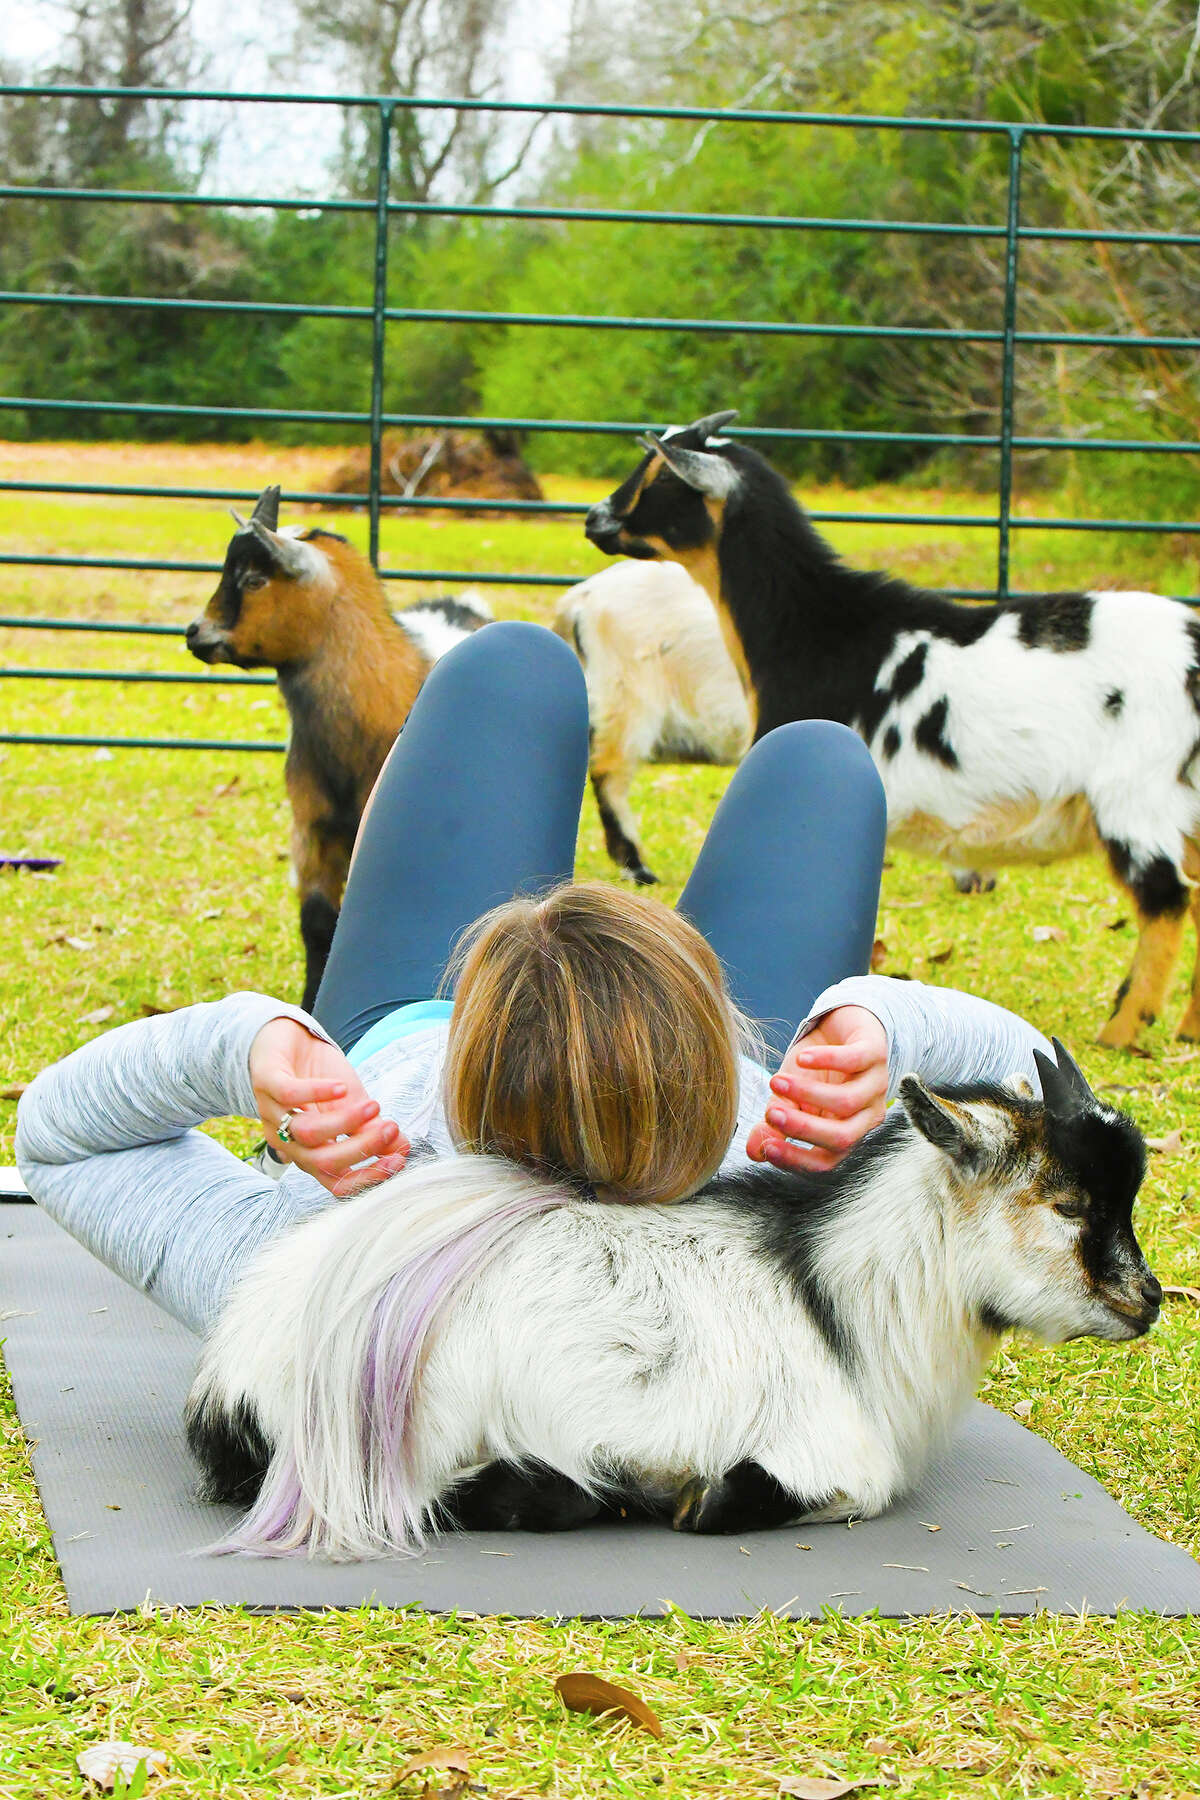 Kimberly Brooke, Goat Yoga Texas instructor, does a yoga routine with a goat behind her head.